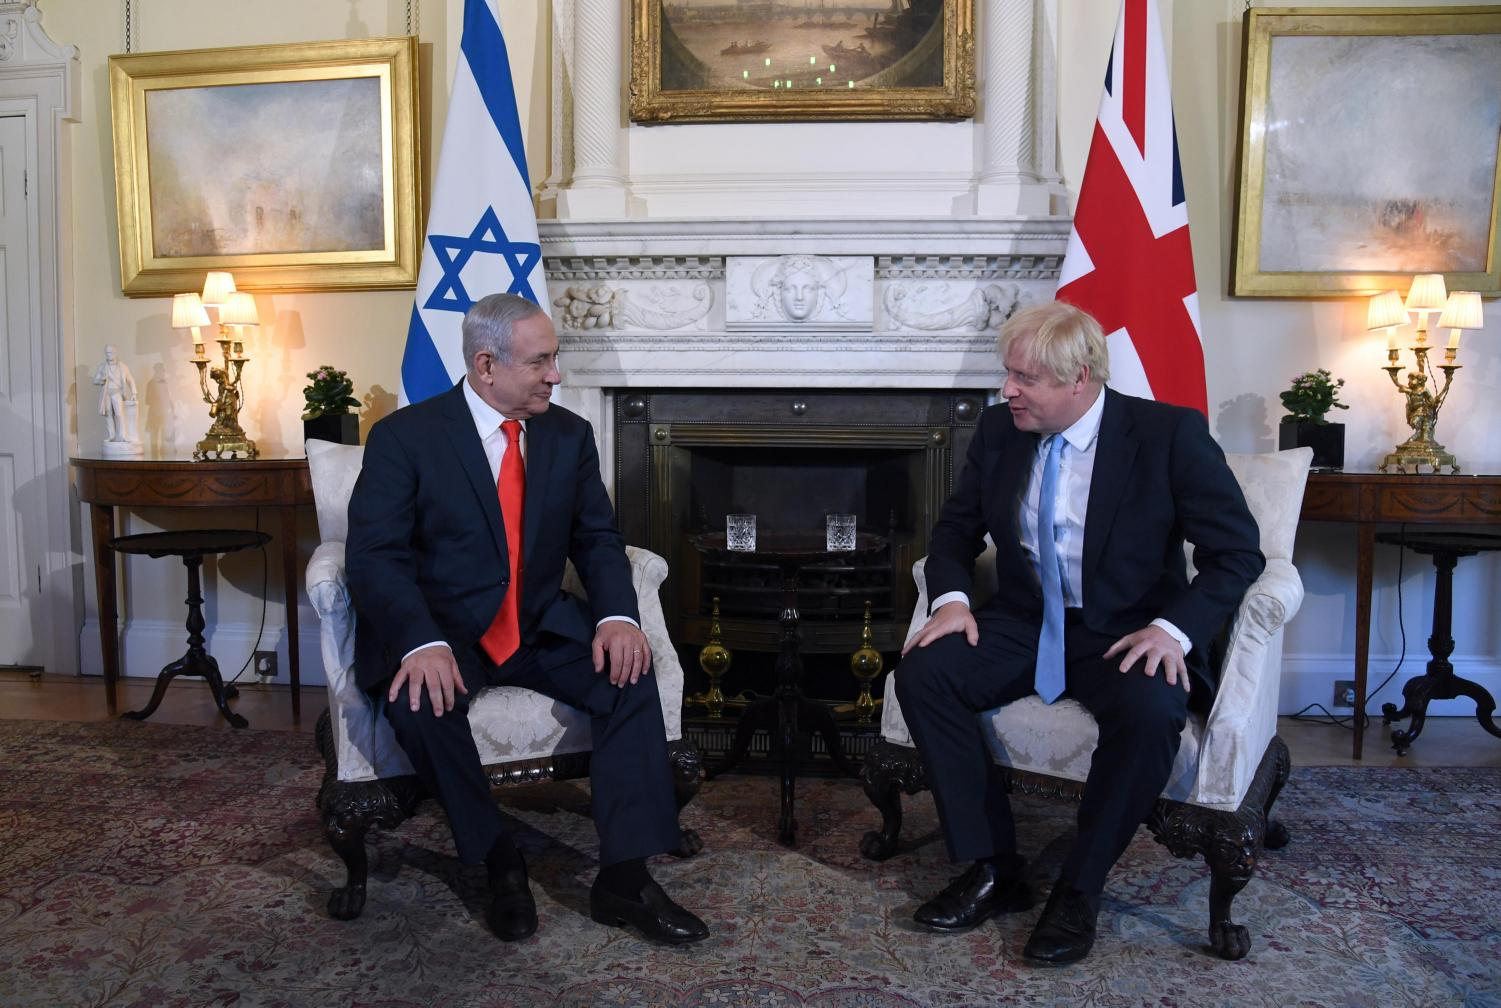 PARTNERSHIP: UK Prime Minister Boris Johnson, right, met with Israeli Prime Minister Benjamin Netanyahu at 10 Downing Street, the residence of the British prime minister, earlier this year. The two countries signed a trade agreement in February in case Brexit occurs.